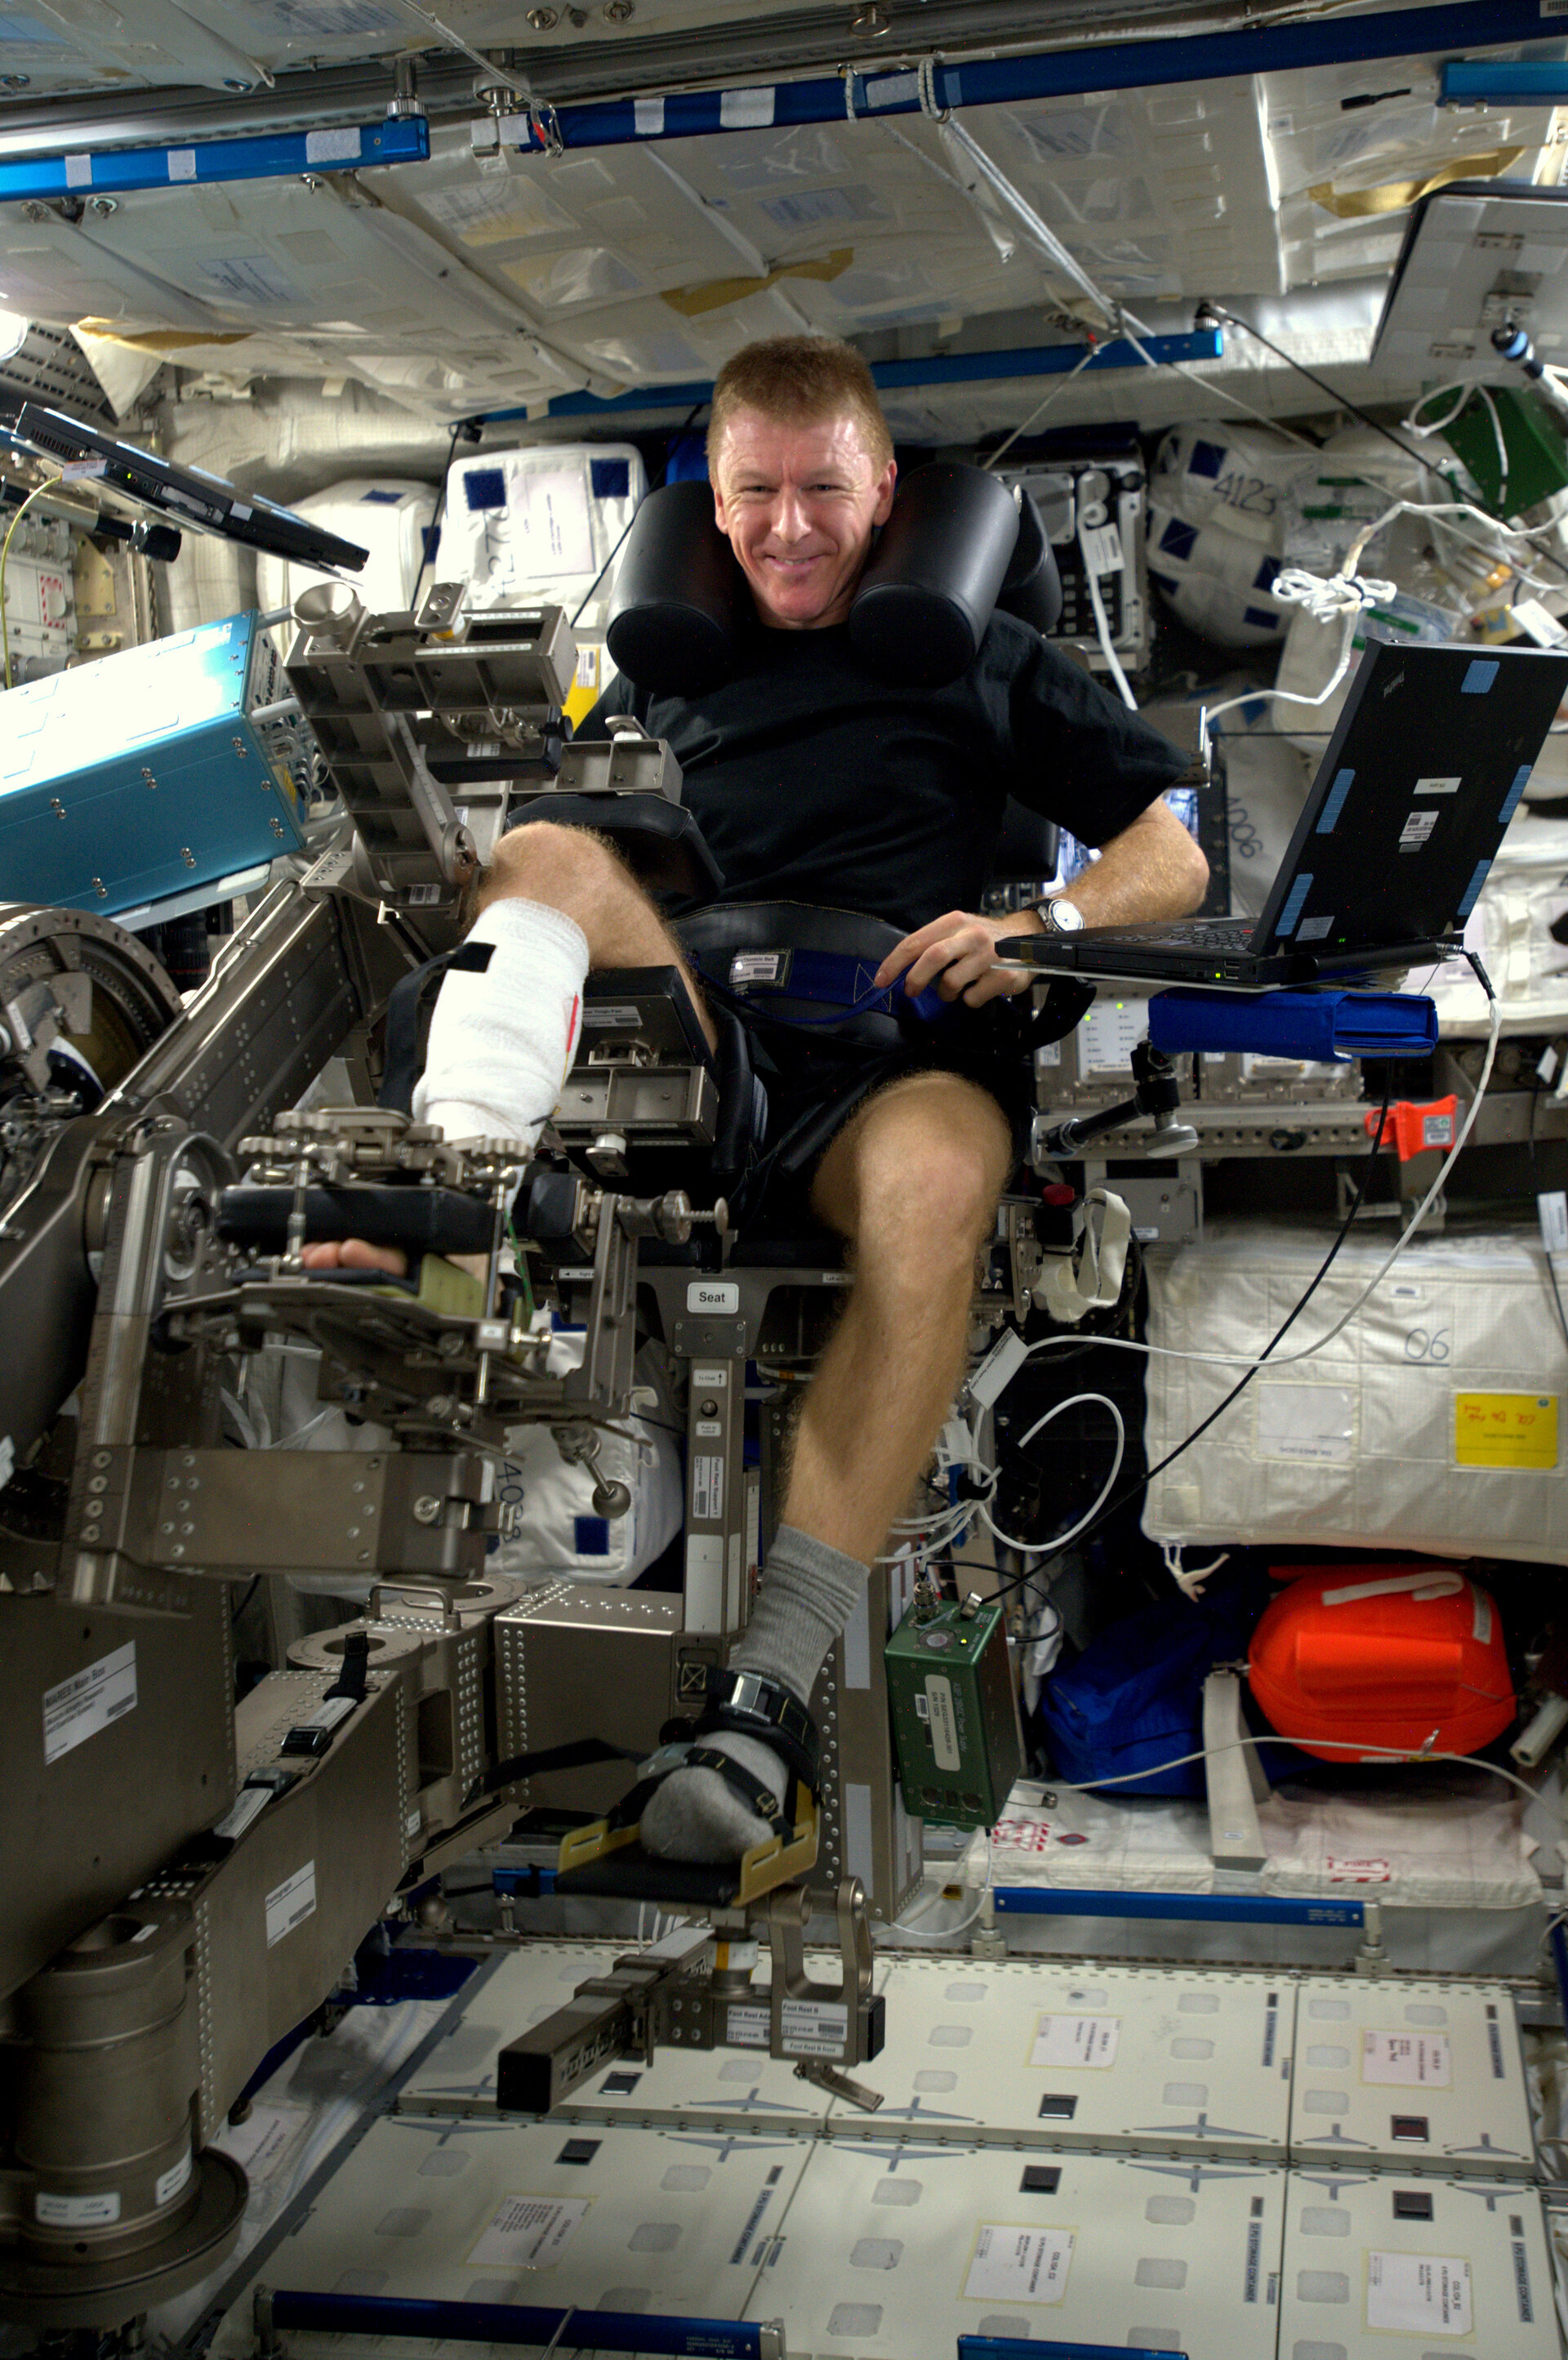 Tim Peake in muscle measurement machine